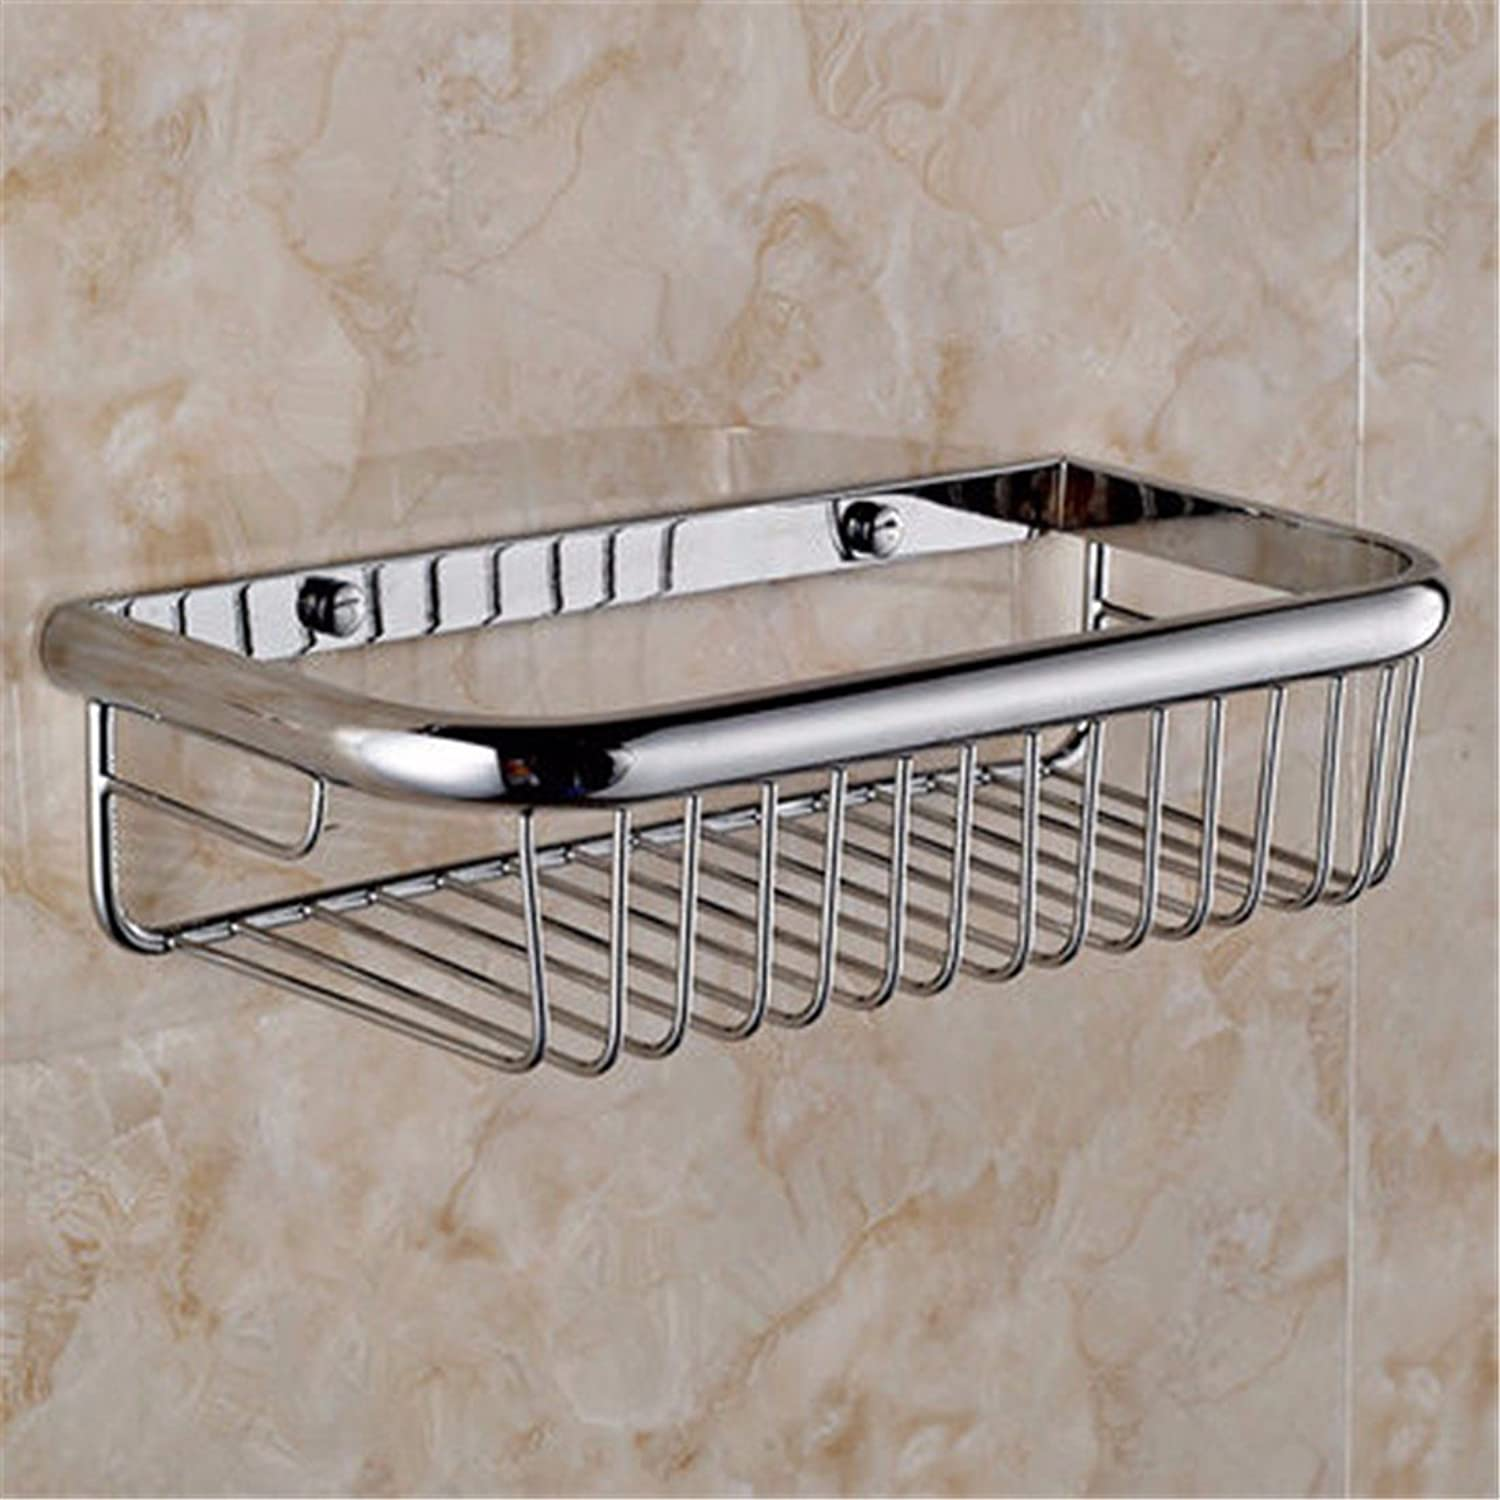 Continental copper grill white paint silver Bathroom Wall-packaged Toilet brush holder soap box, built-in basket 1 B